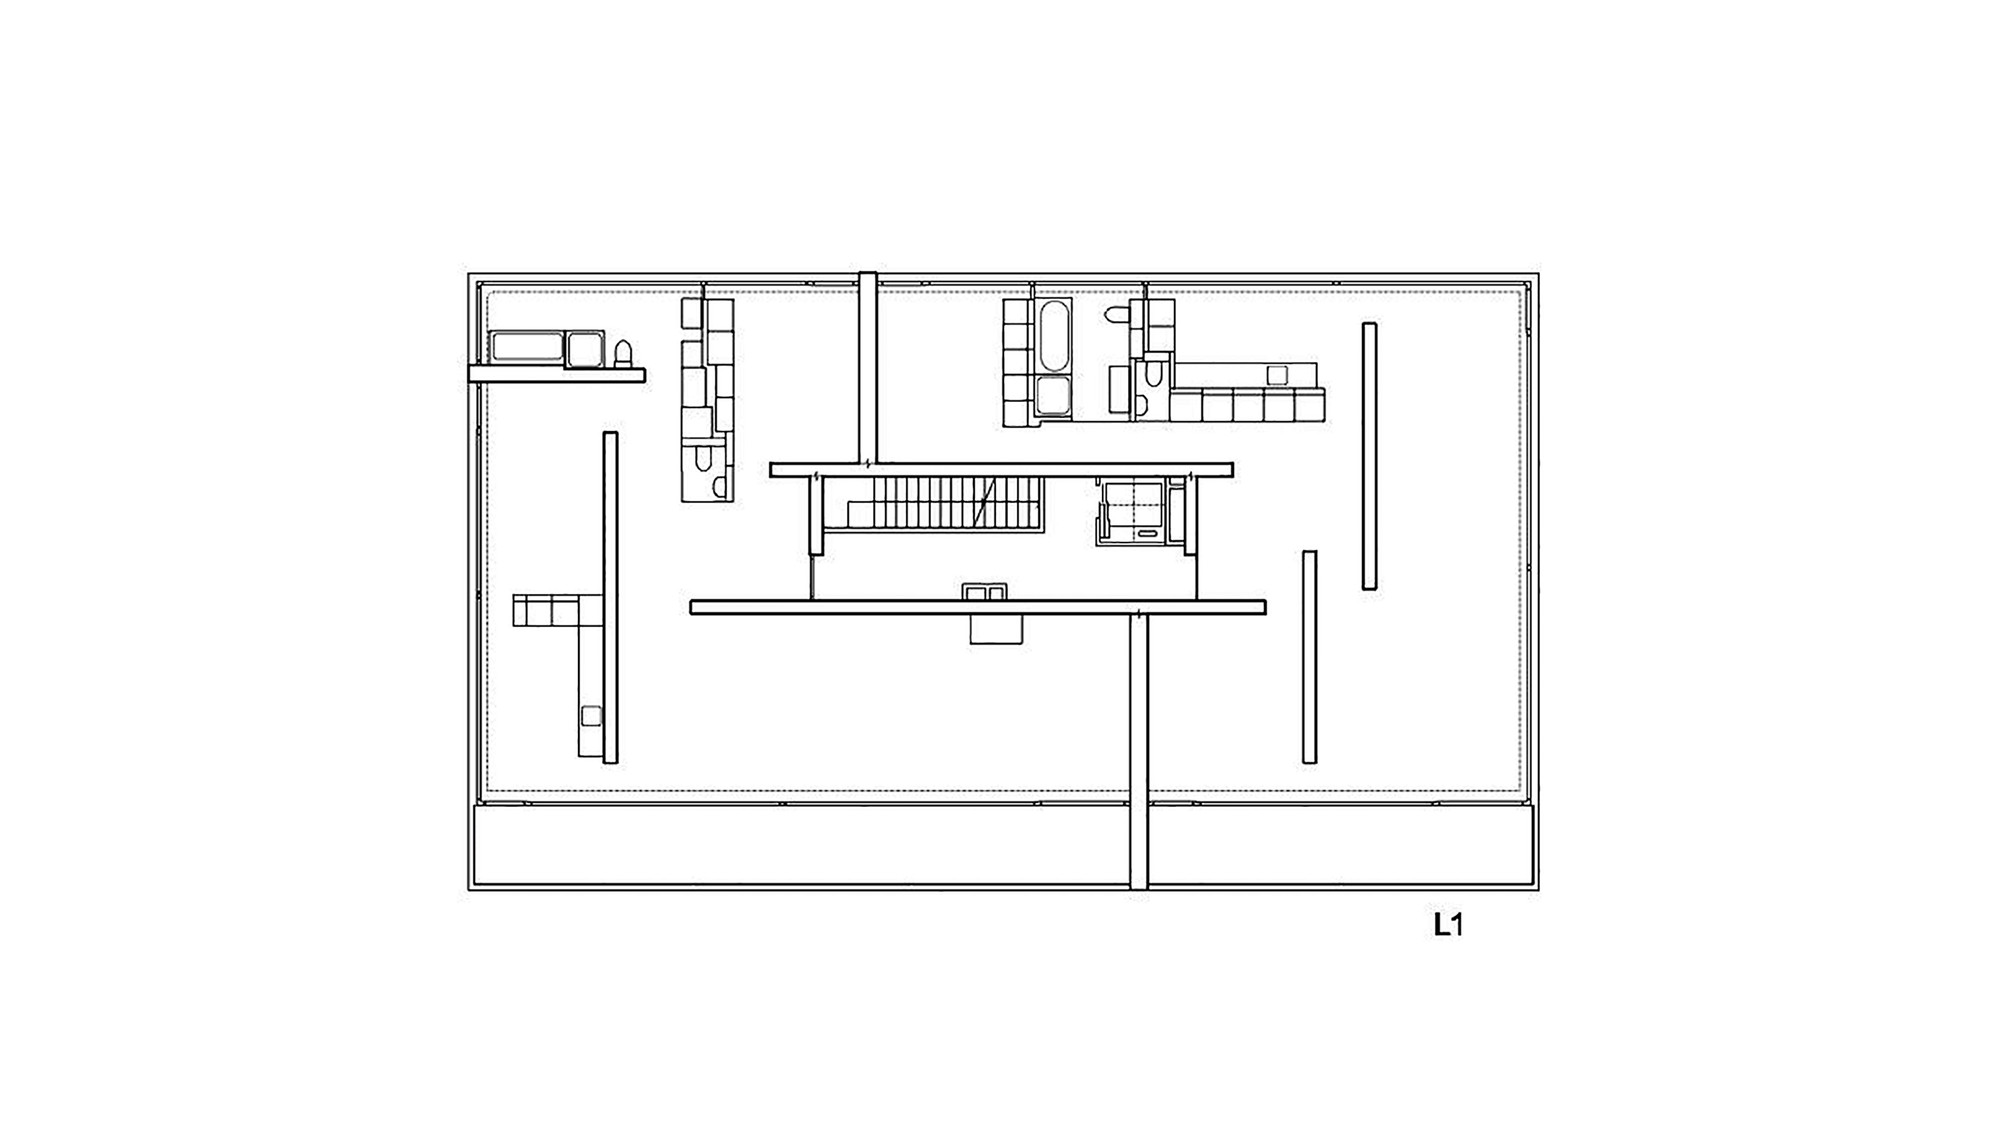 Garage Floor Plans With Apartments Apartment Building On Forsterstrasse Christian Kerez